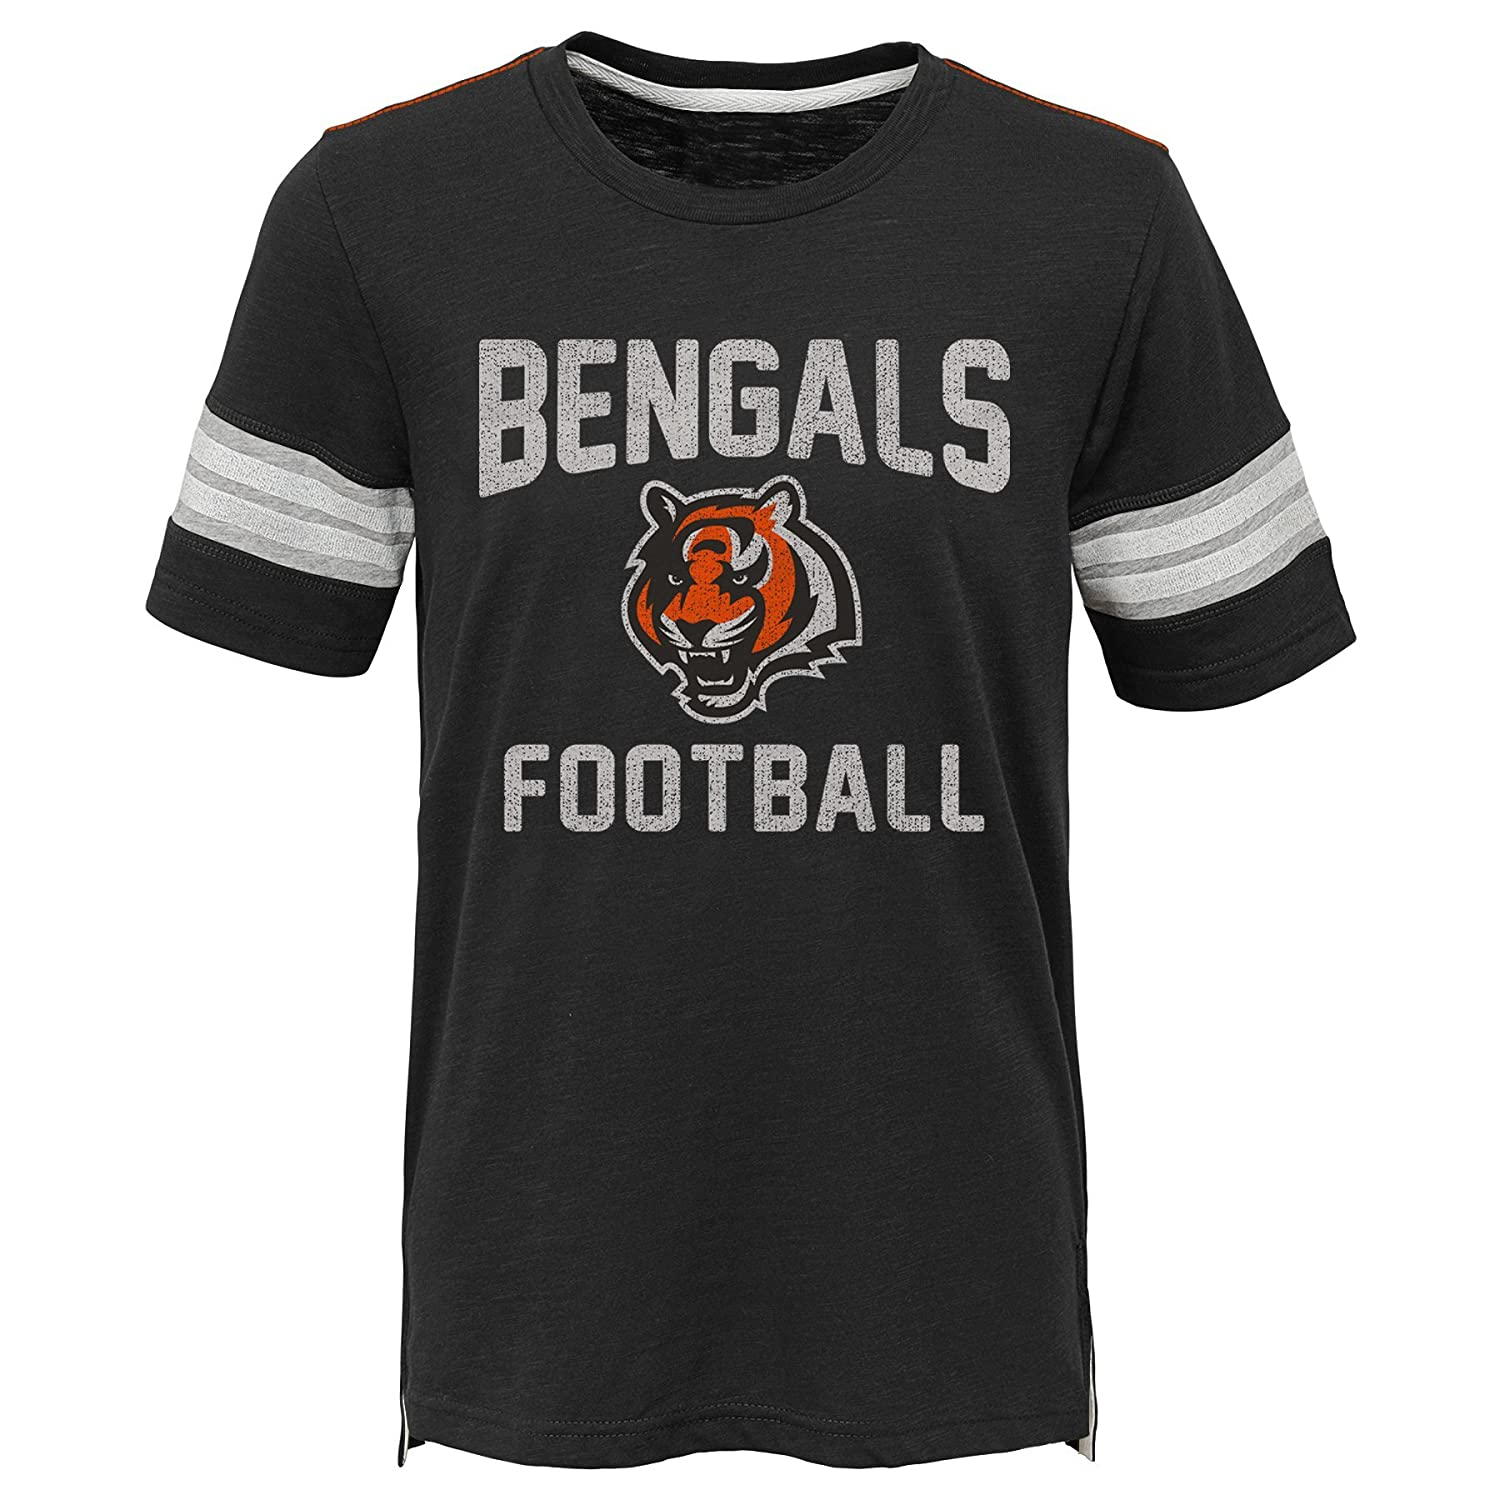 Kids Large Outerstuff NFL NFL Cincinnati Bengals Kids Prestige Short Sleeve Crew Neck Tee Black 7